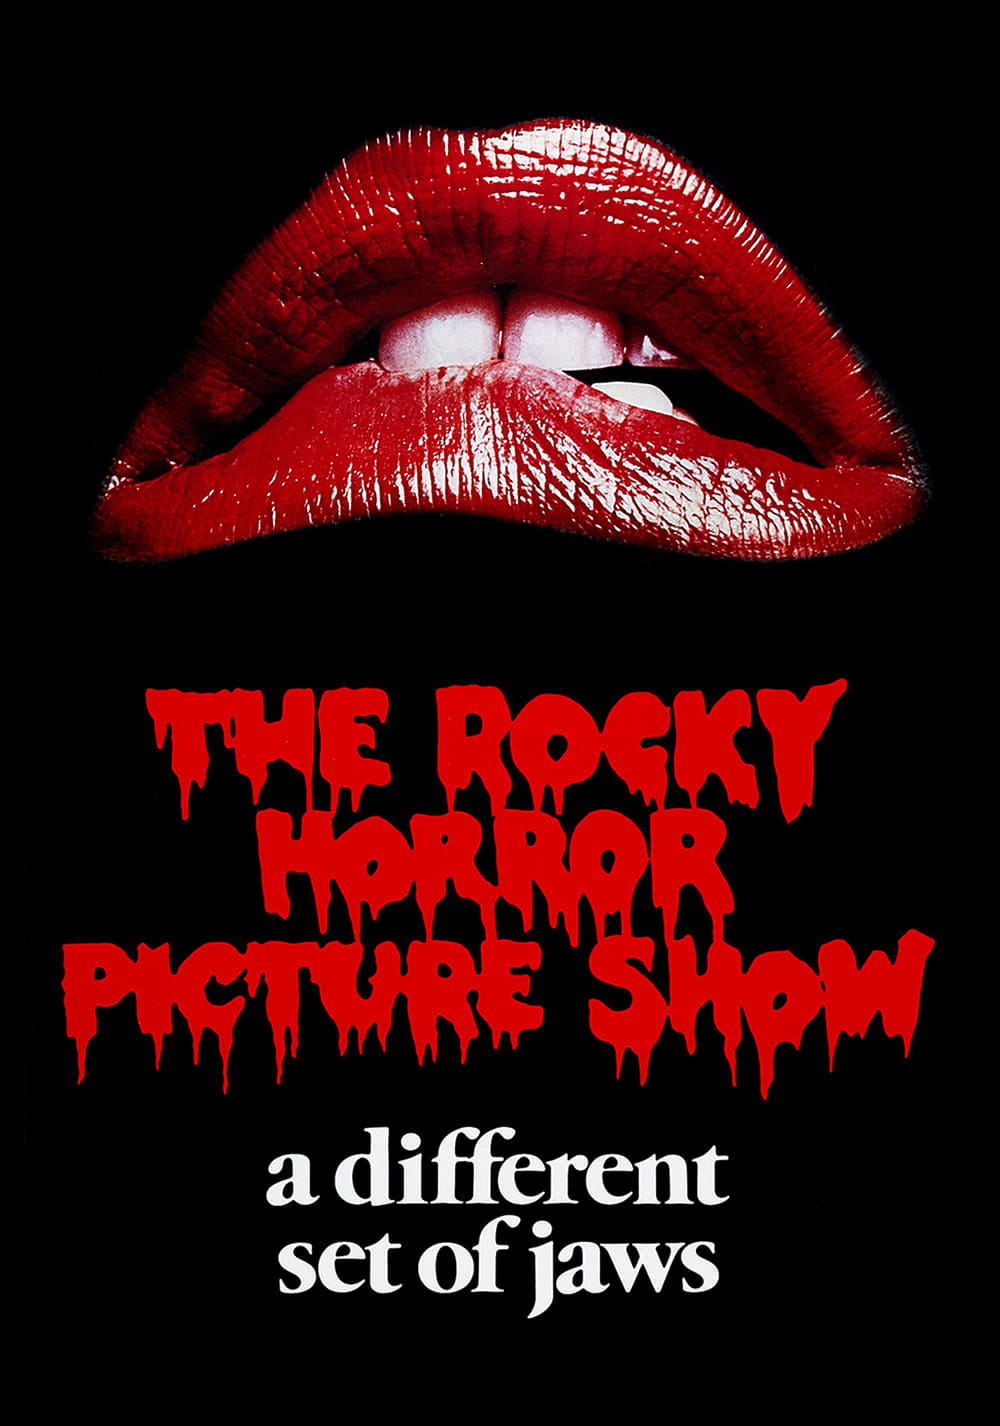 The Rocky Horror Picture Show with Live Cast